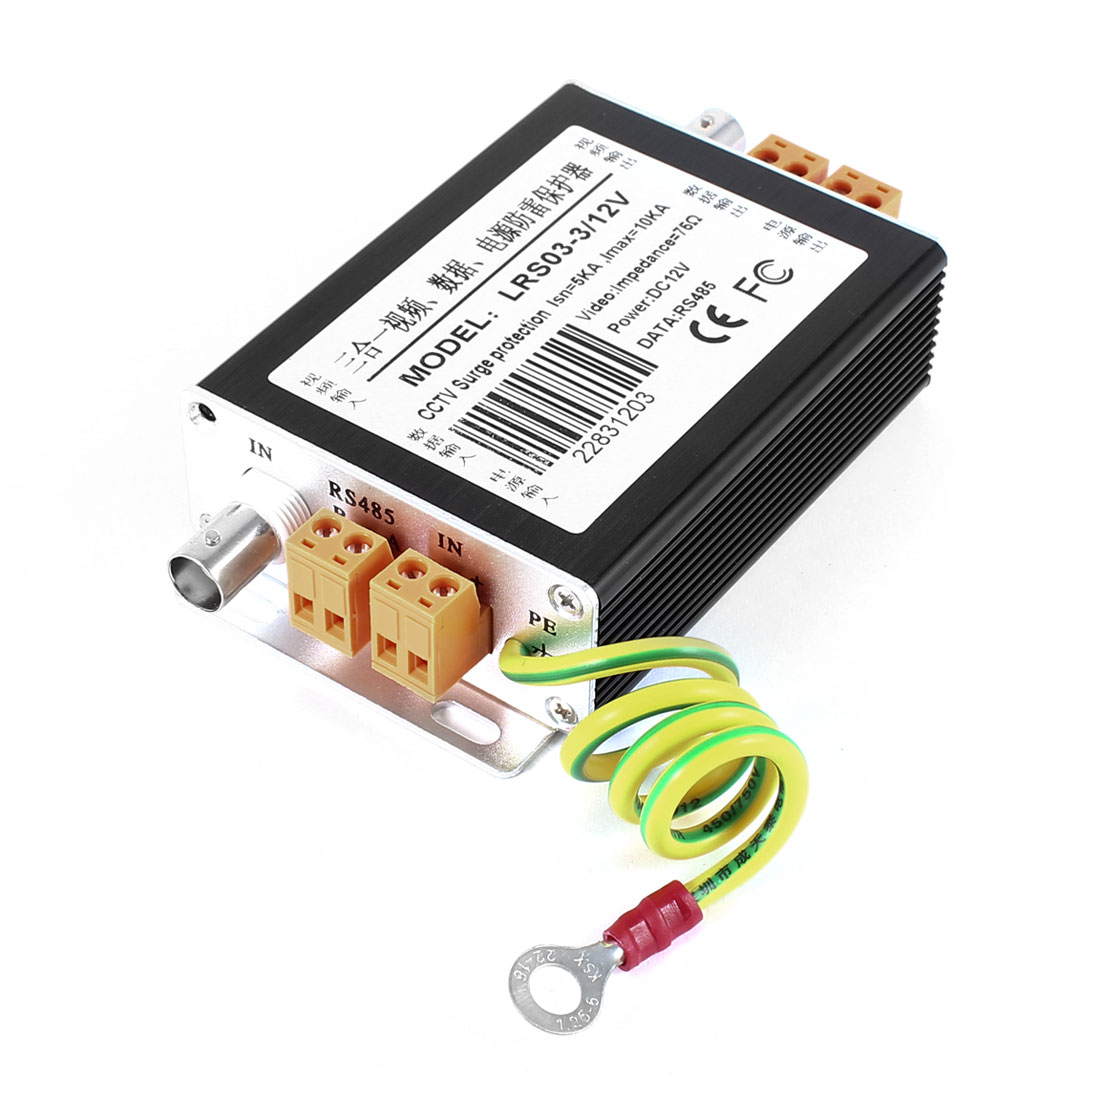 DC-12V-Aluminum-3-in-1-Video-Data-Power-Lighting-Surge-Protection-Protector